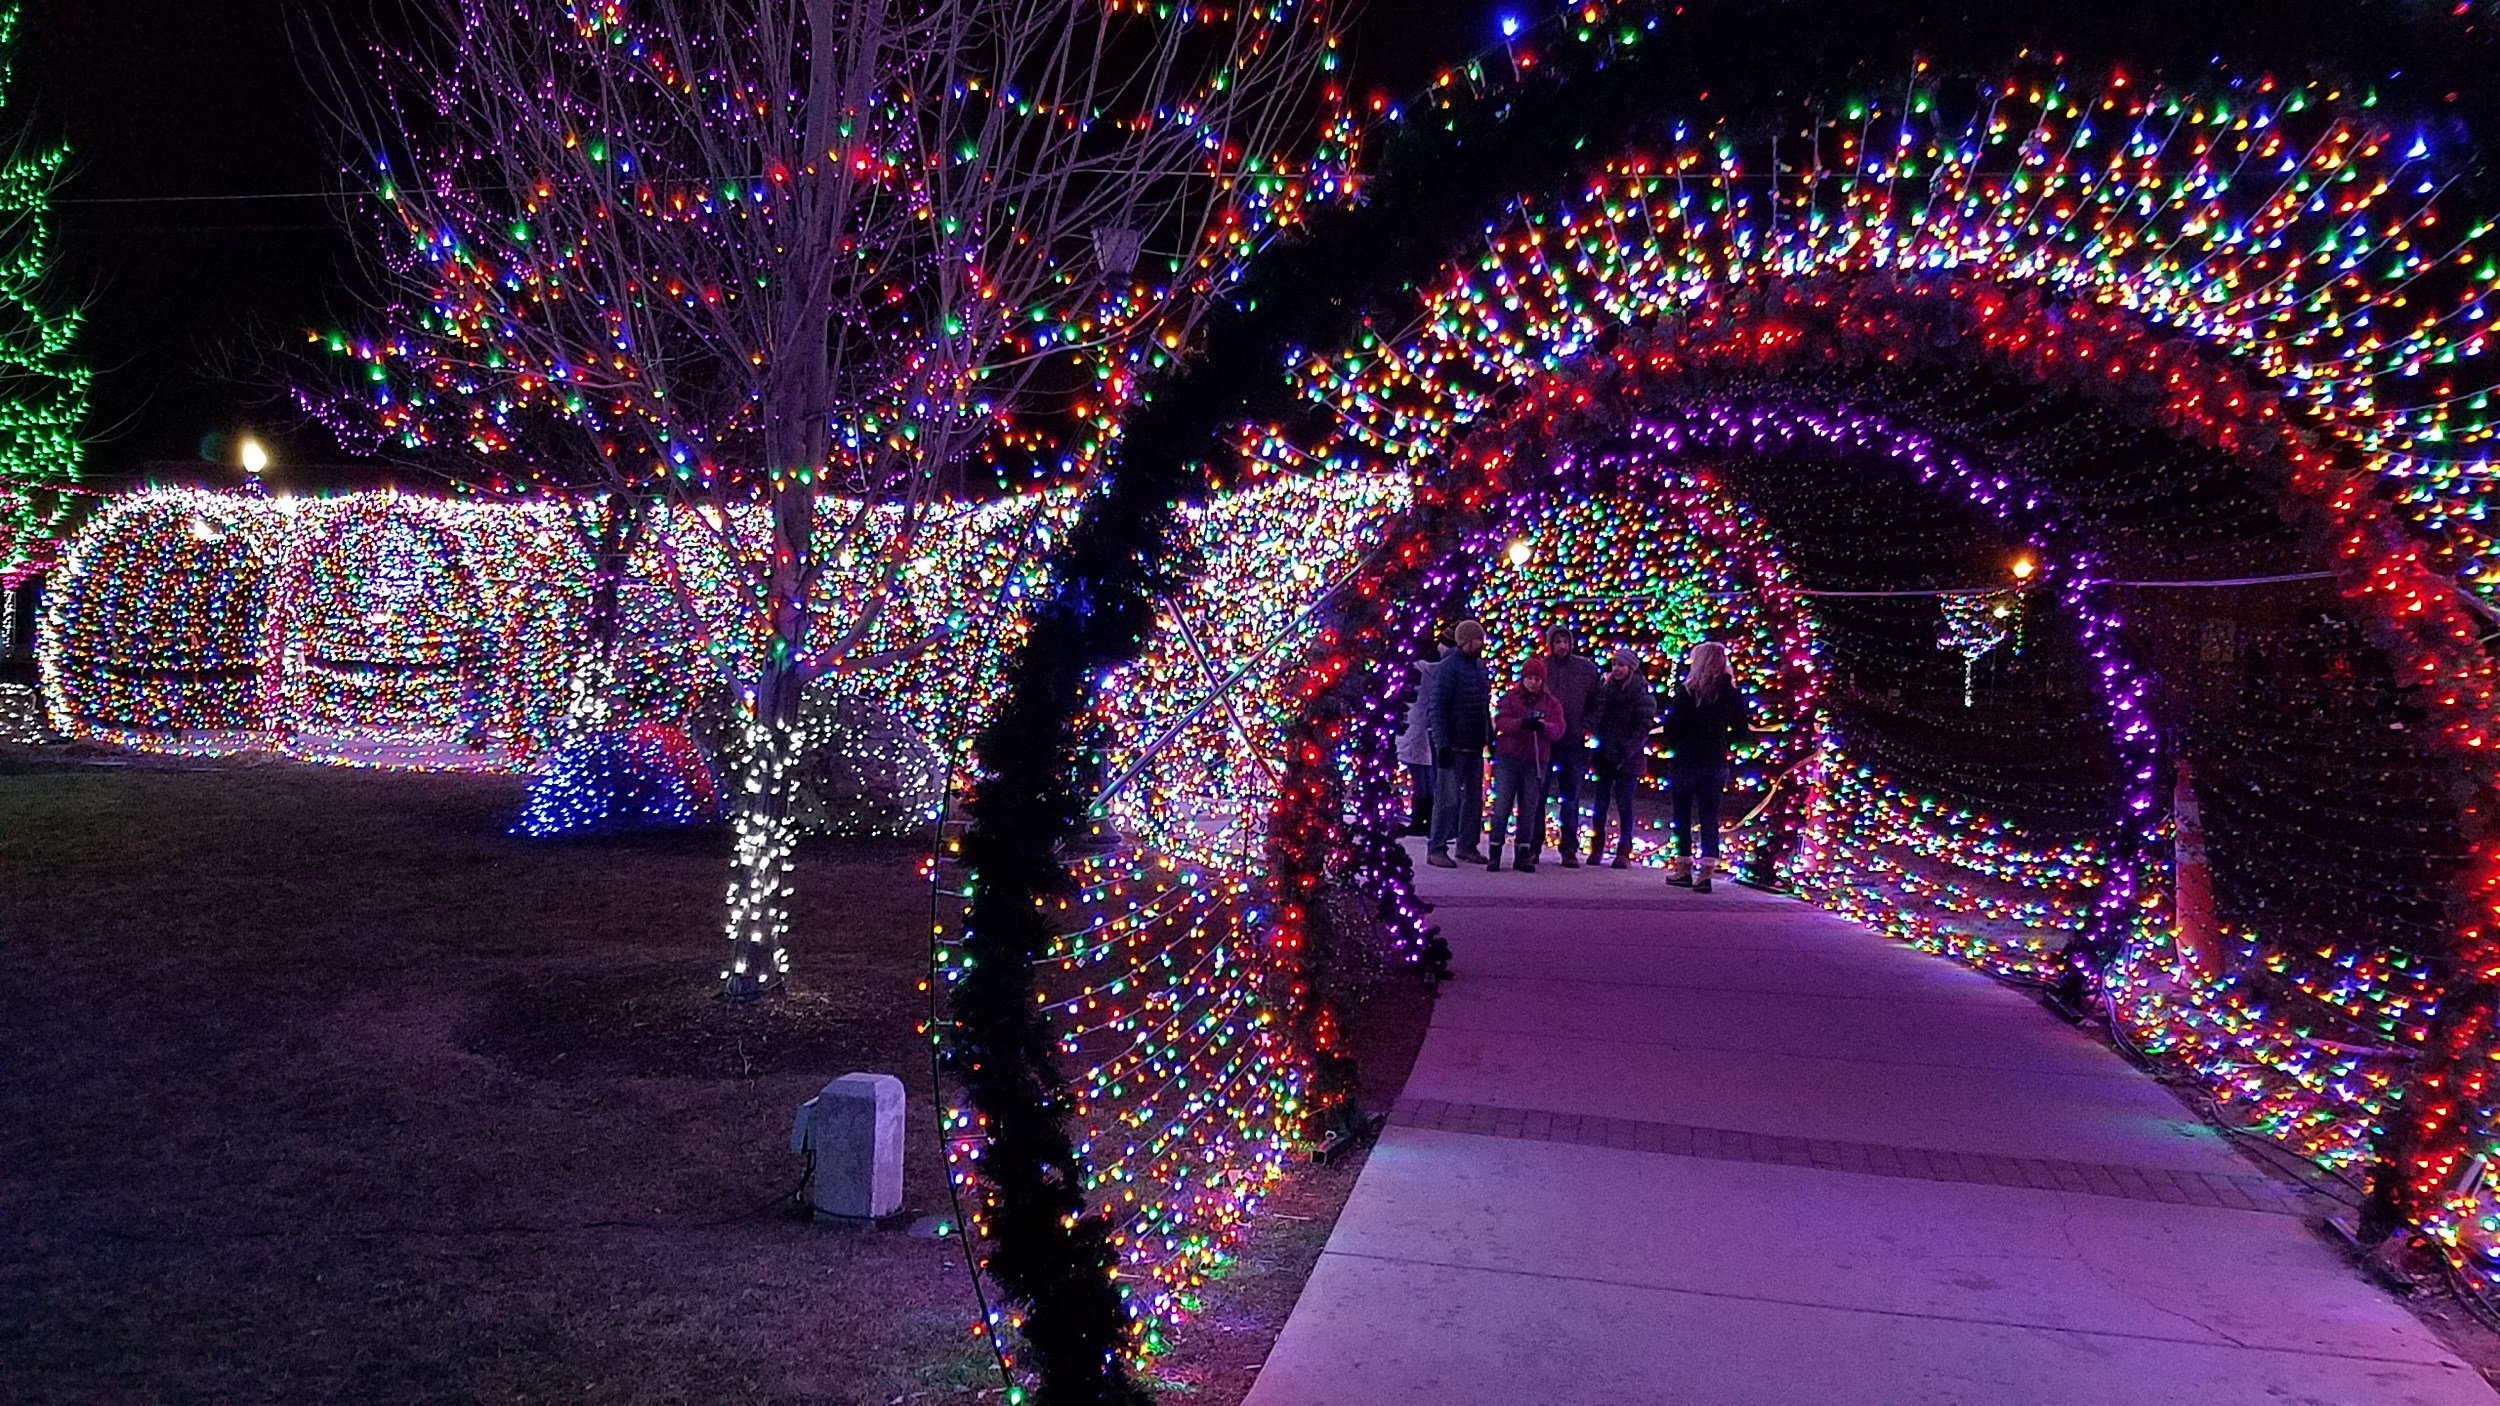 Christmas Lights Boise.Indian Creek Christmas Lights Video Picture Gallery